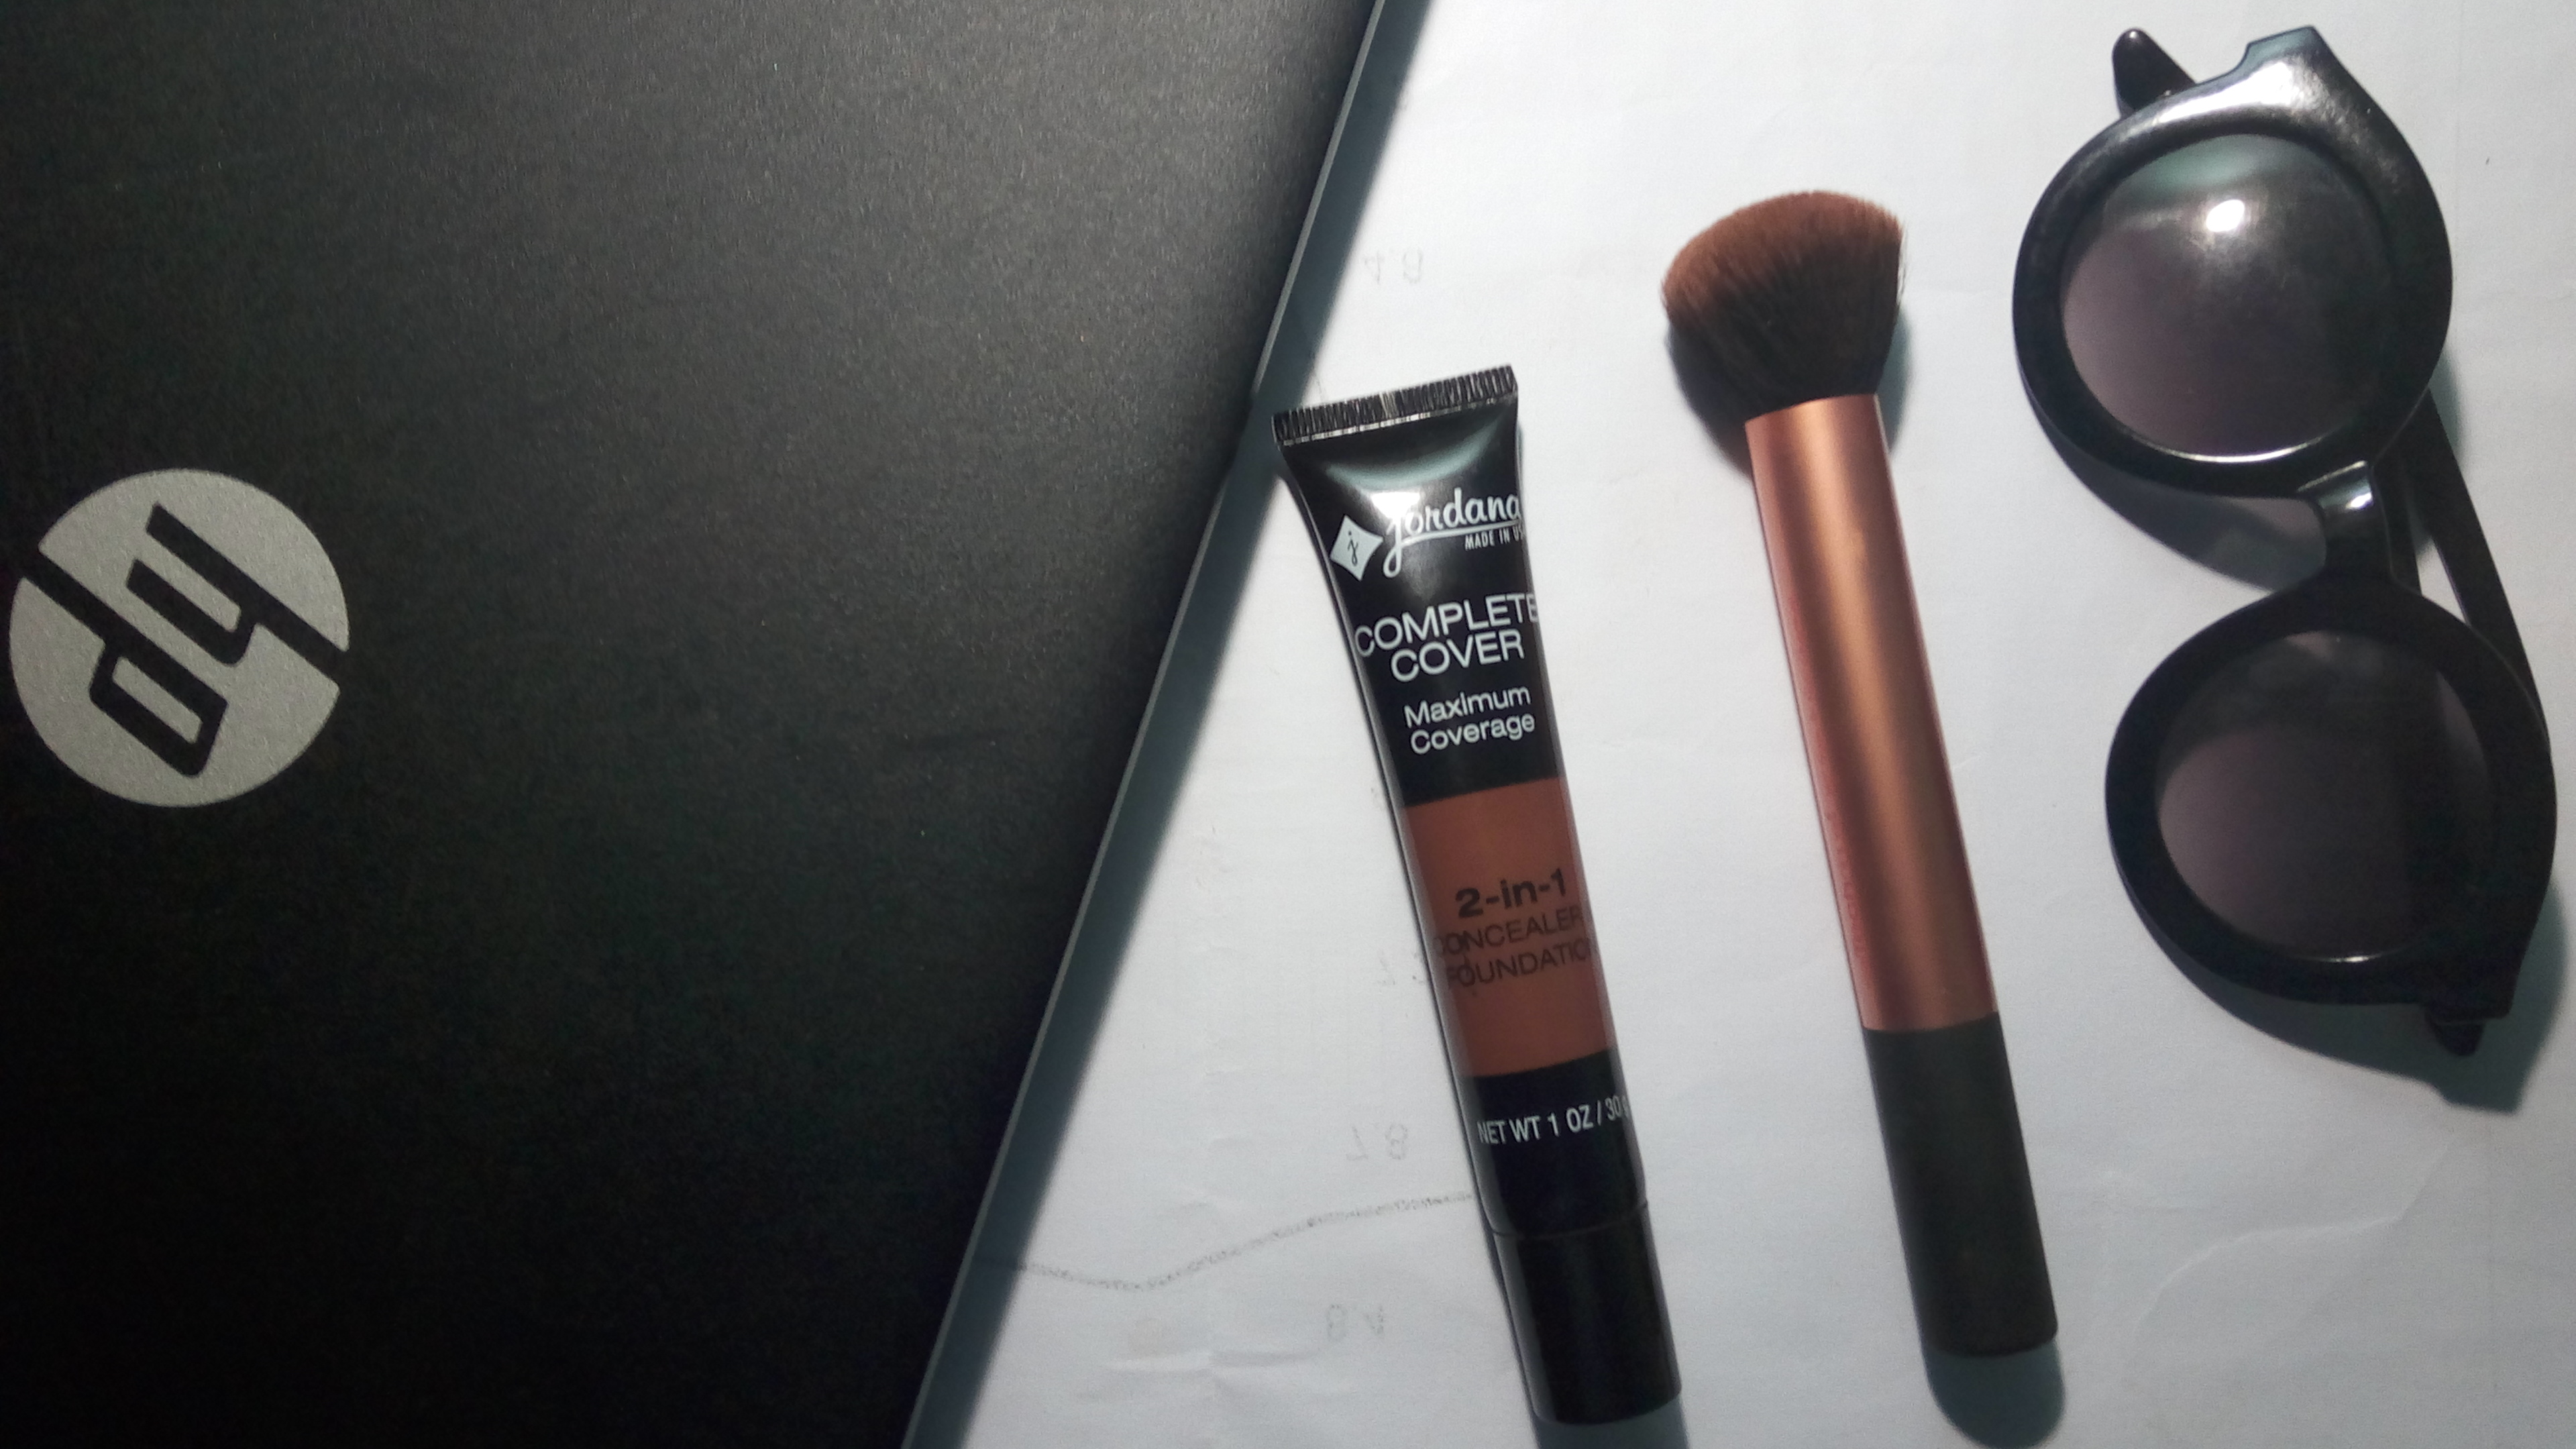 JORDANA 2-IN-1 CONCEALER & FOUNDATION